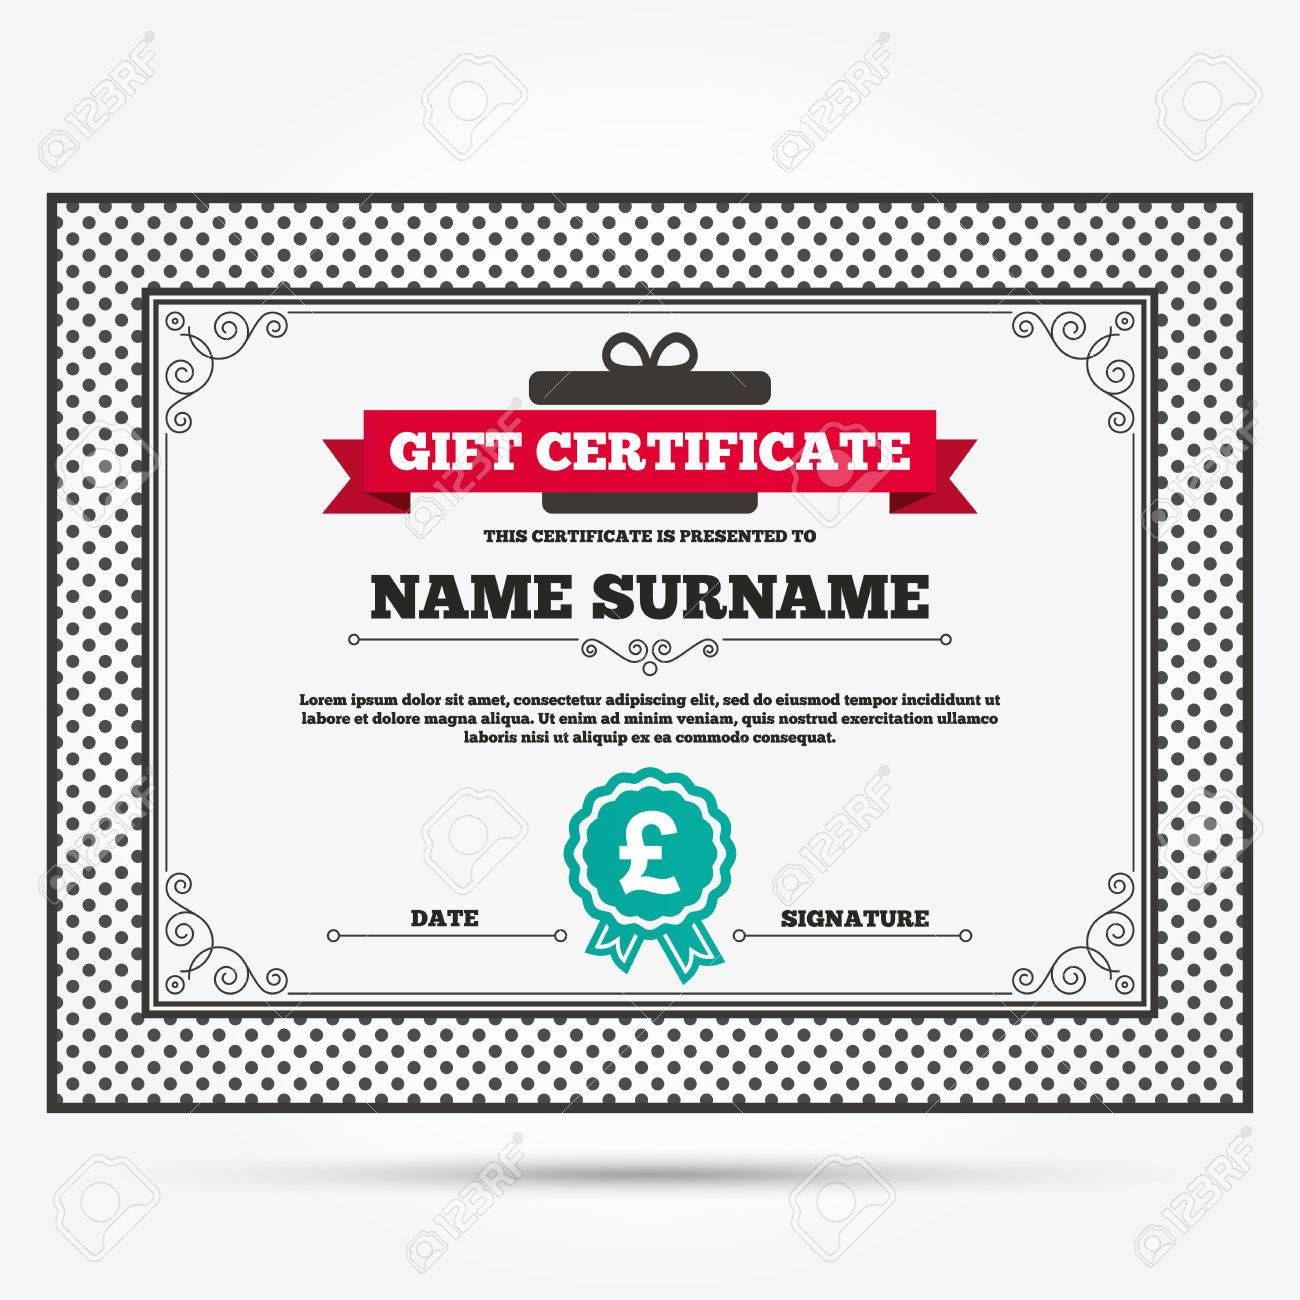 Gift certificate pound sign icon gbp currency symbol money pound sign icon gbp currency symbol money label template with buycottarizona Gallery